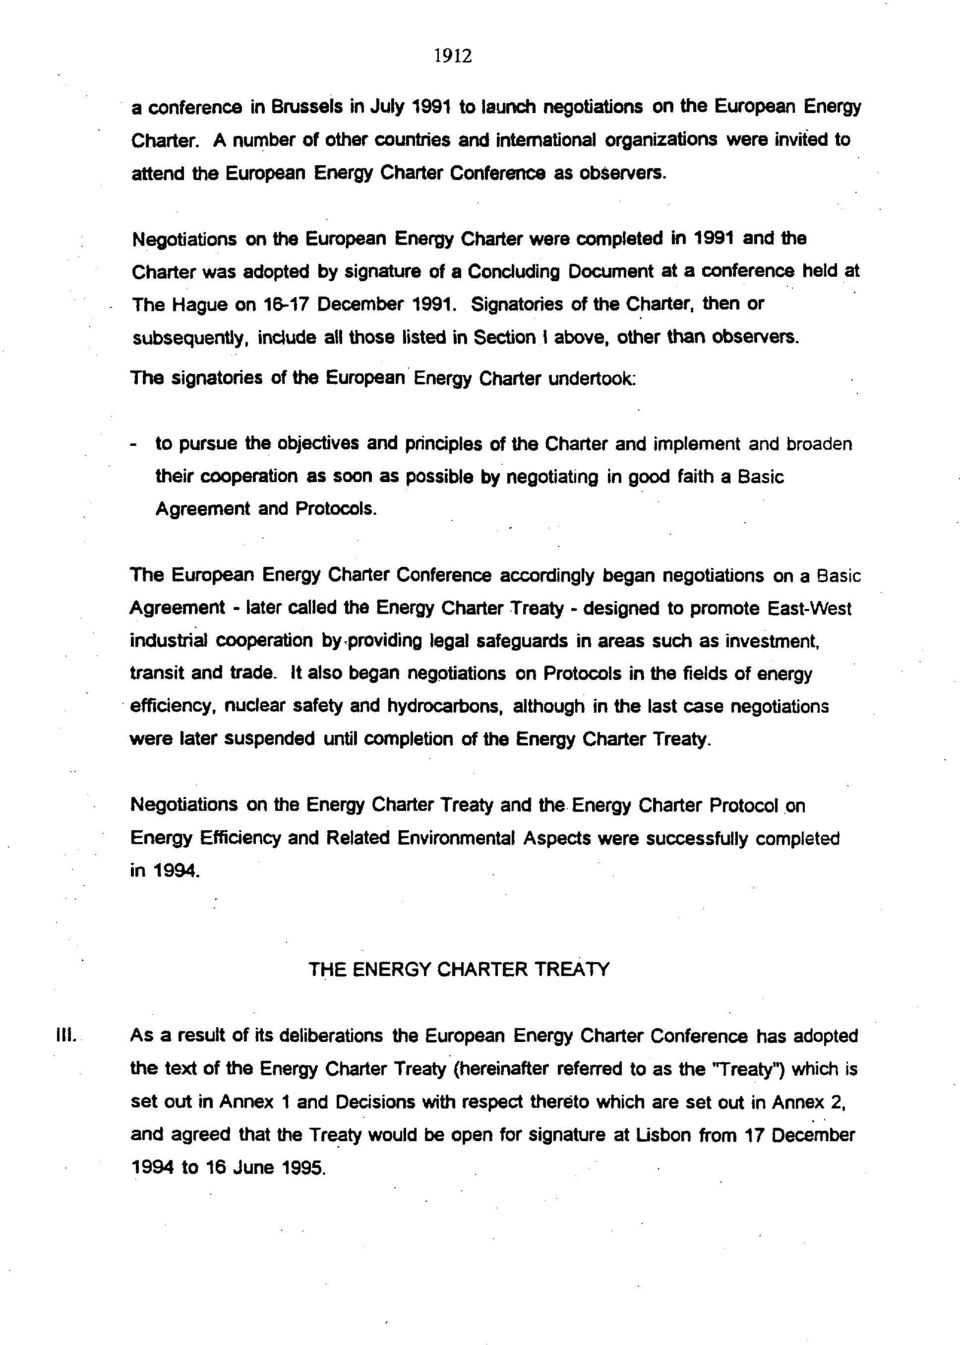 Negotiations on the European Energy Charter were completed in 1991 and the Charter was adopted by signature of a Concluding Document at a conference held at The Hague on 16-17 December 1991.